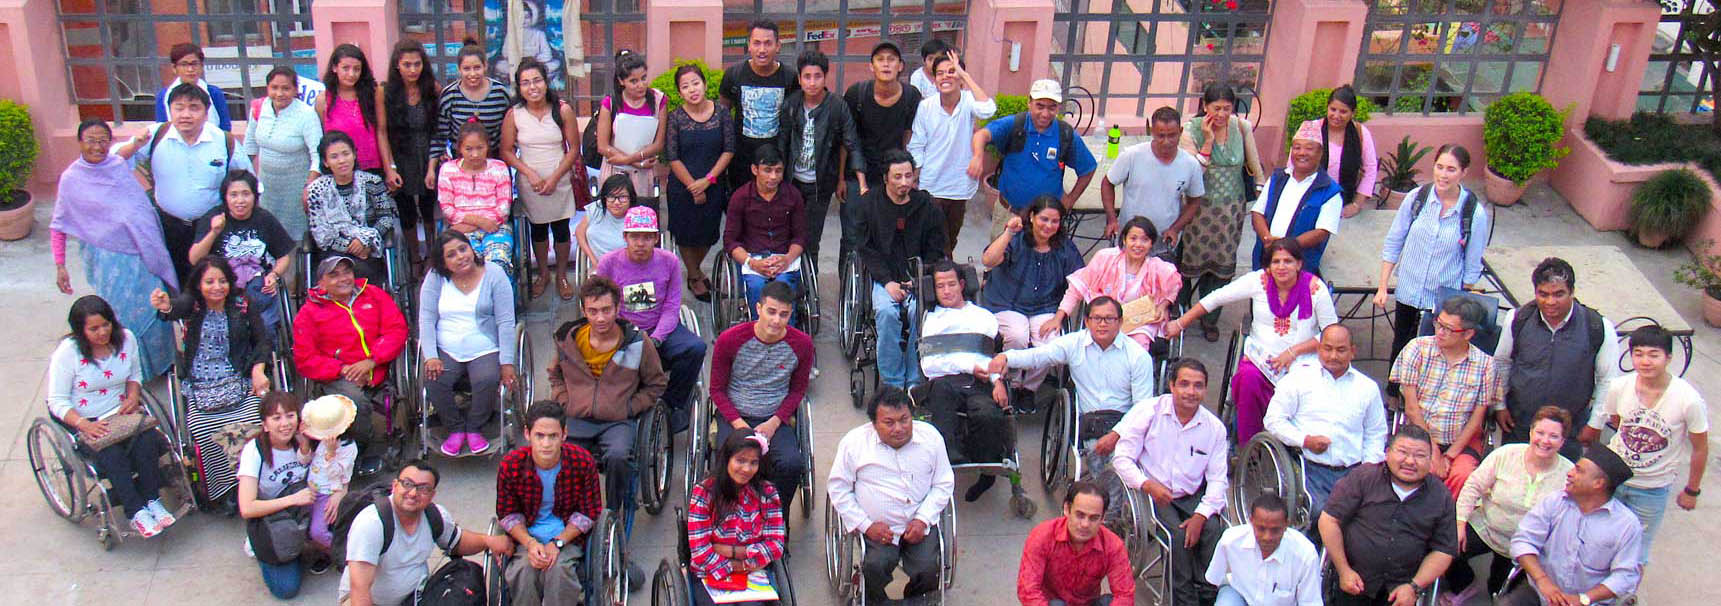 Group photo of CIL members and Staffs infront of a building.